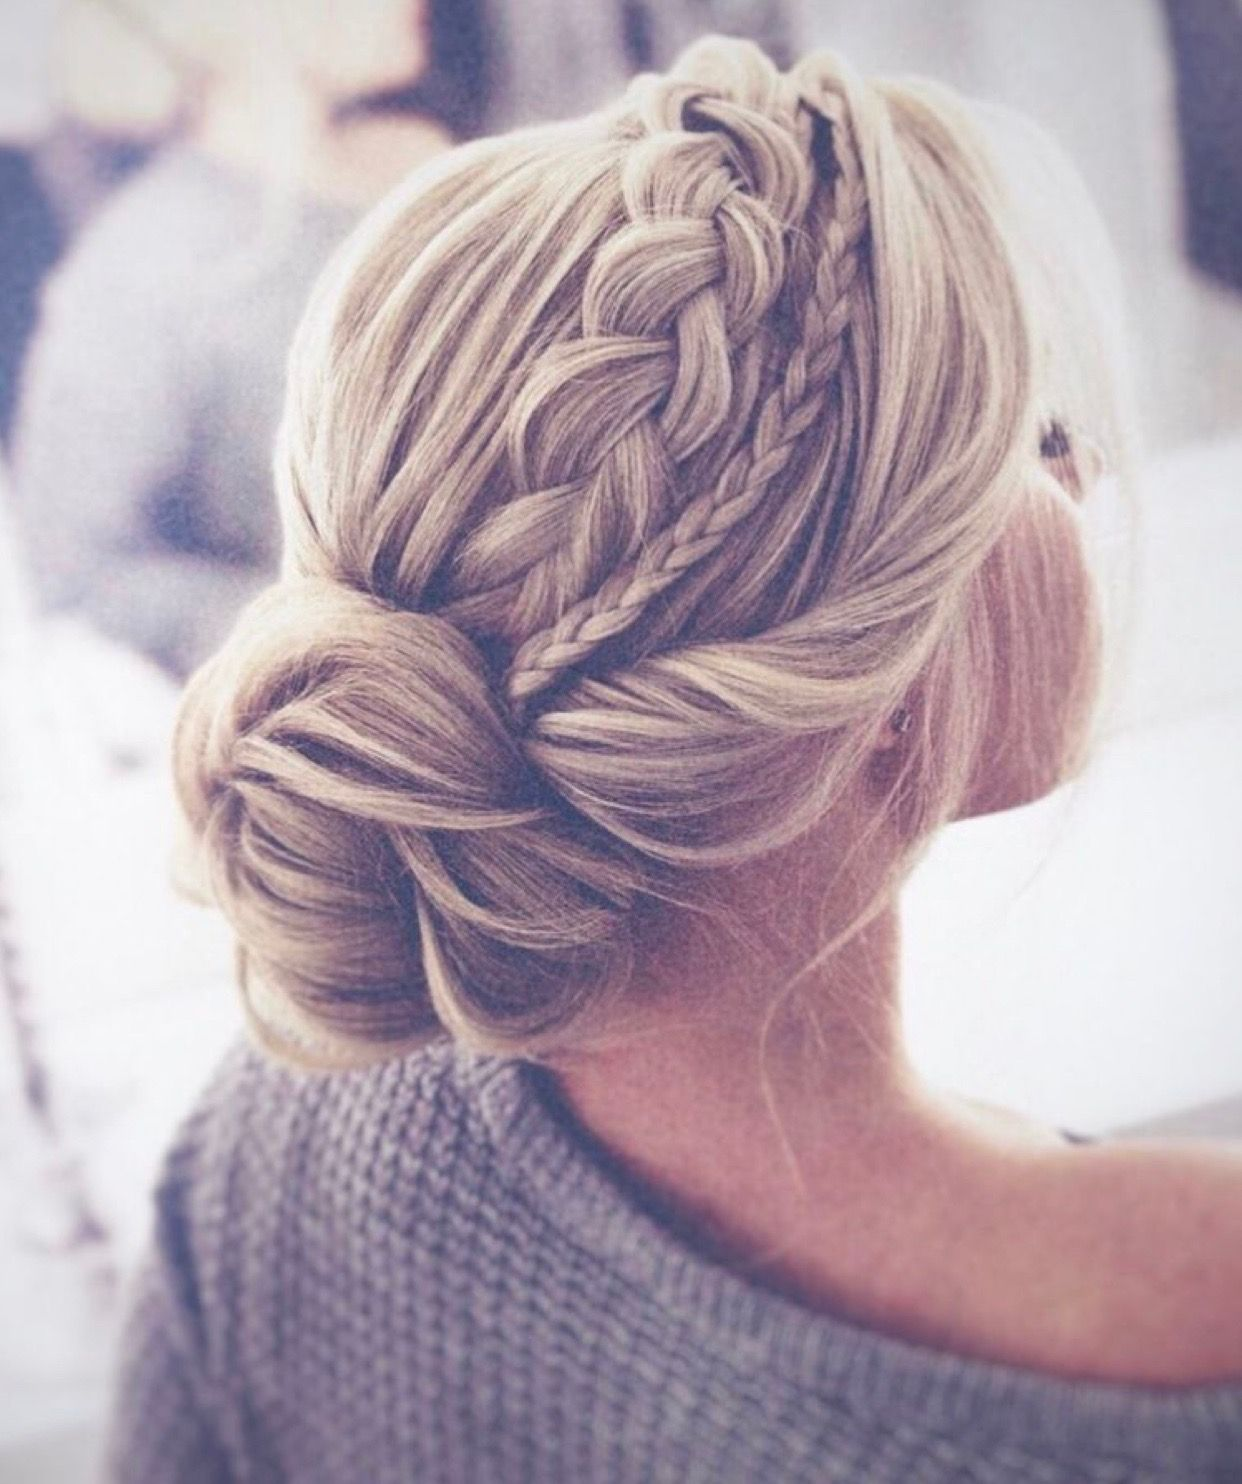 The Most Perfect Braided Updo Twisted Into An Elegant Low Bun This Hairstyle Is Absolutely Perfect Braided Hairstyles For Wedding Long Hair Styles Hair Styles